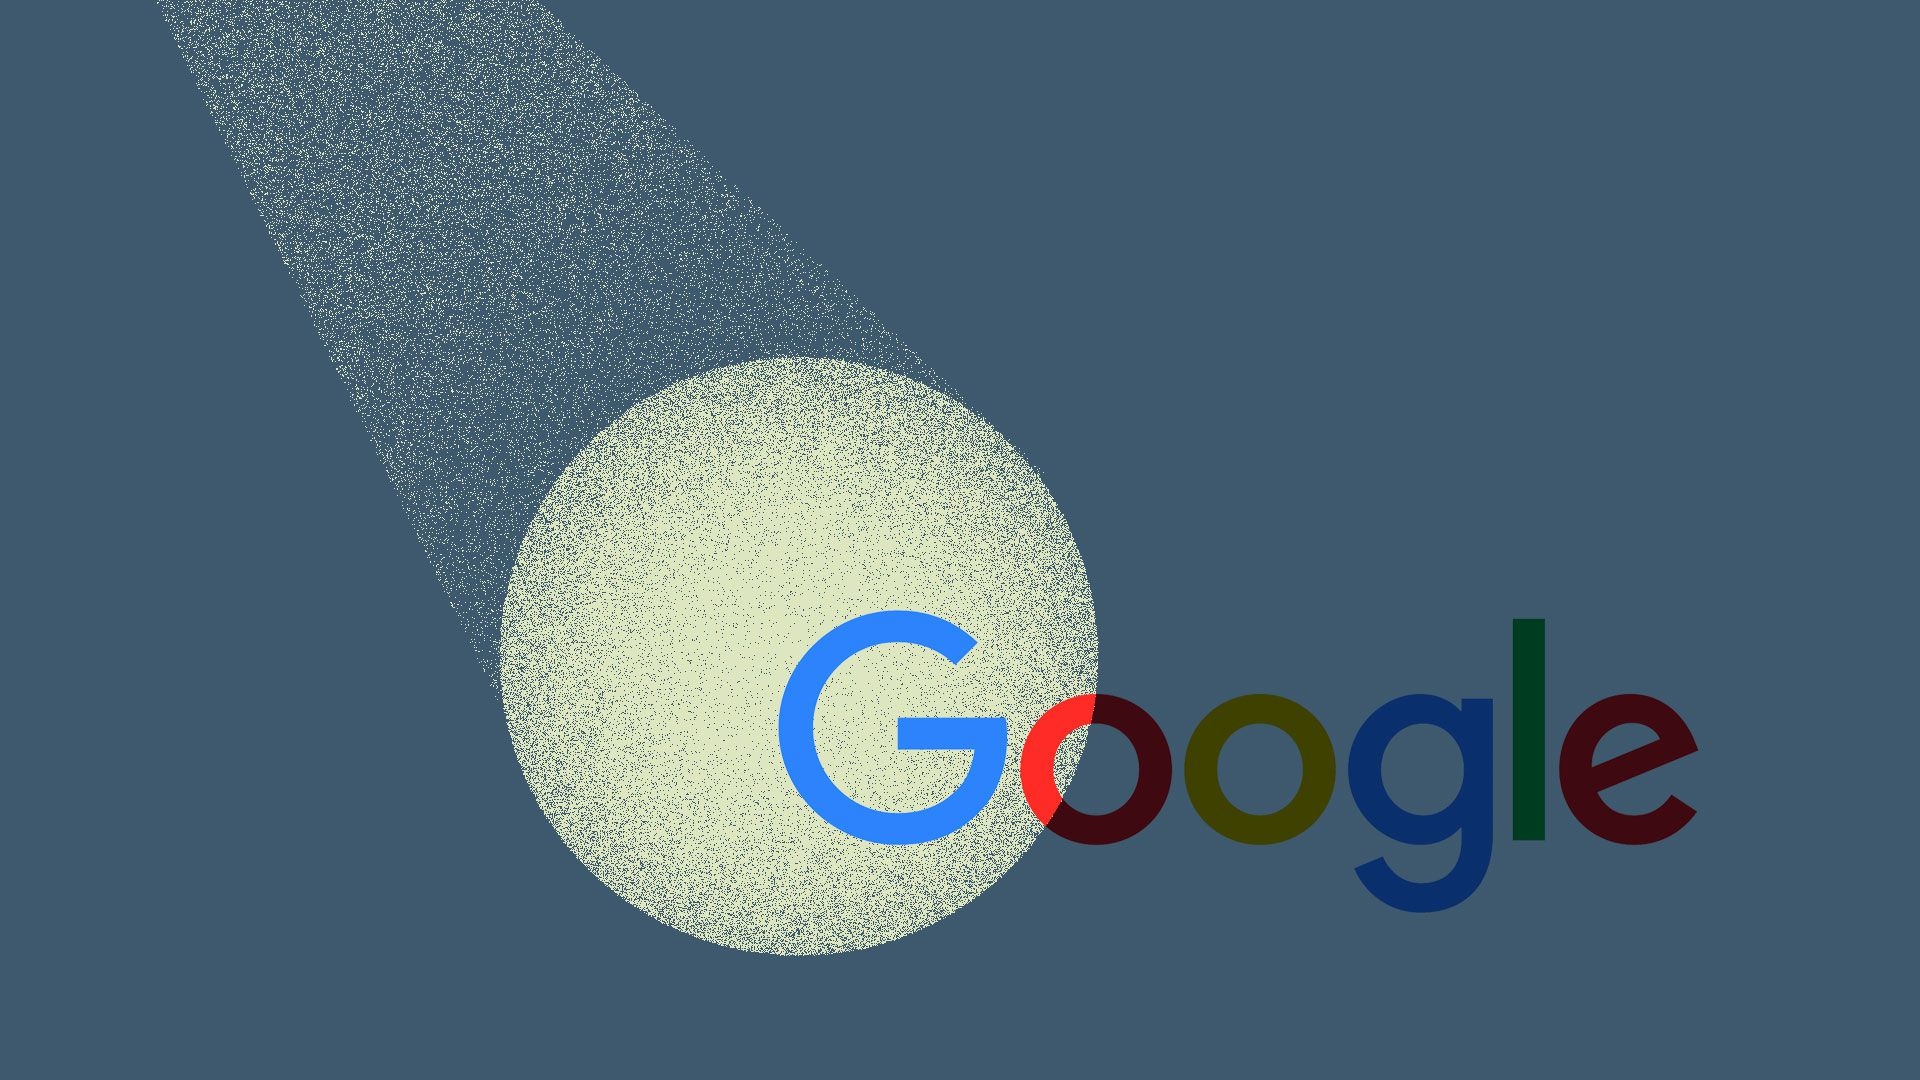 Illustration of a spotlight over Google's logo